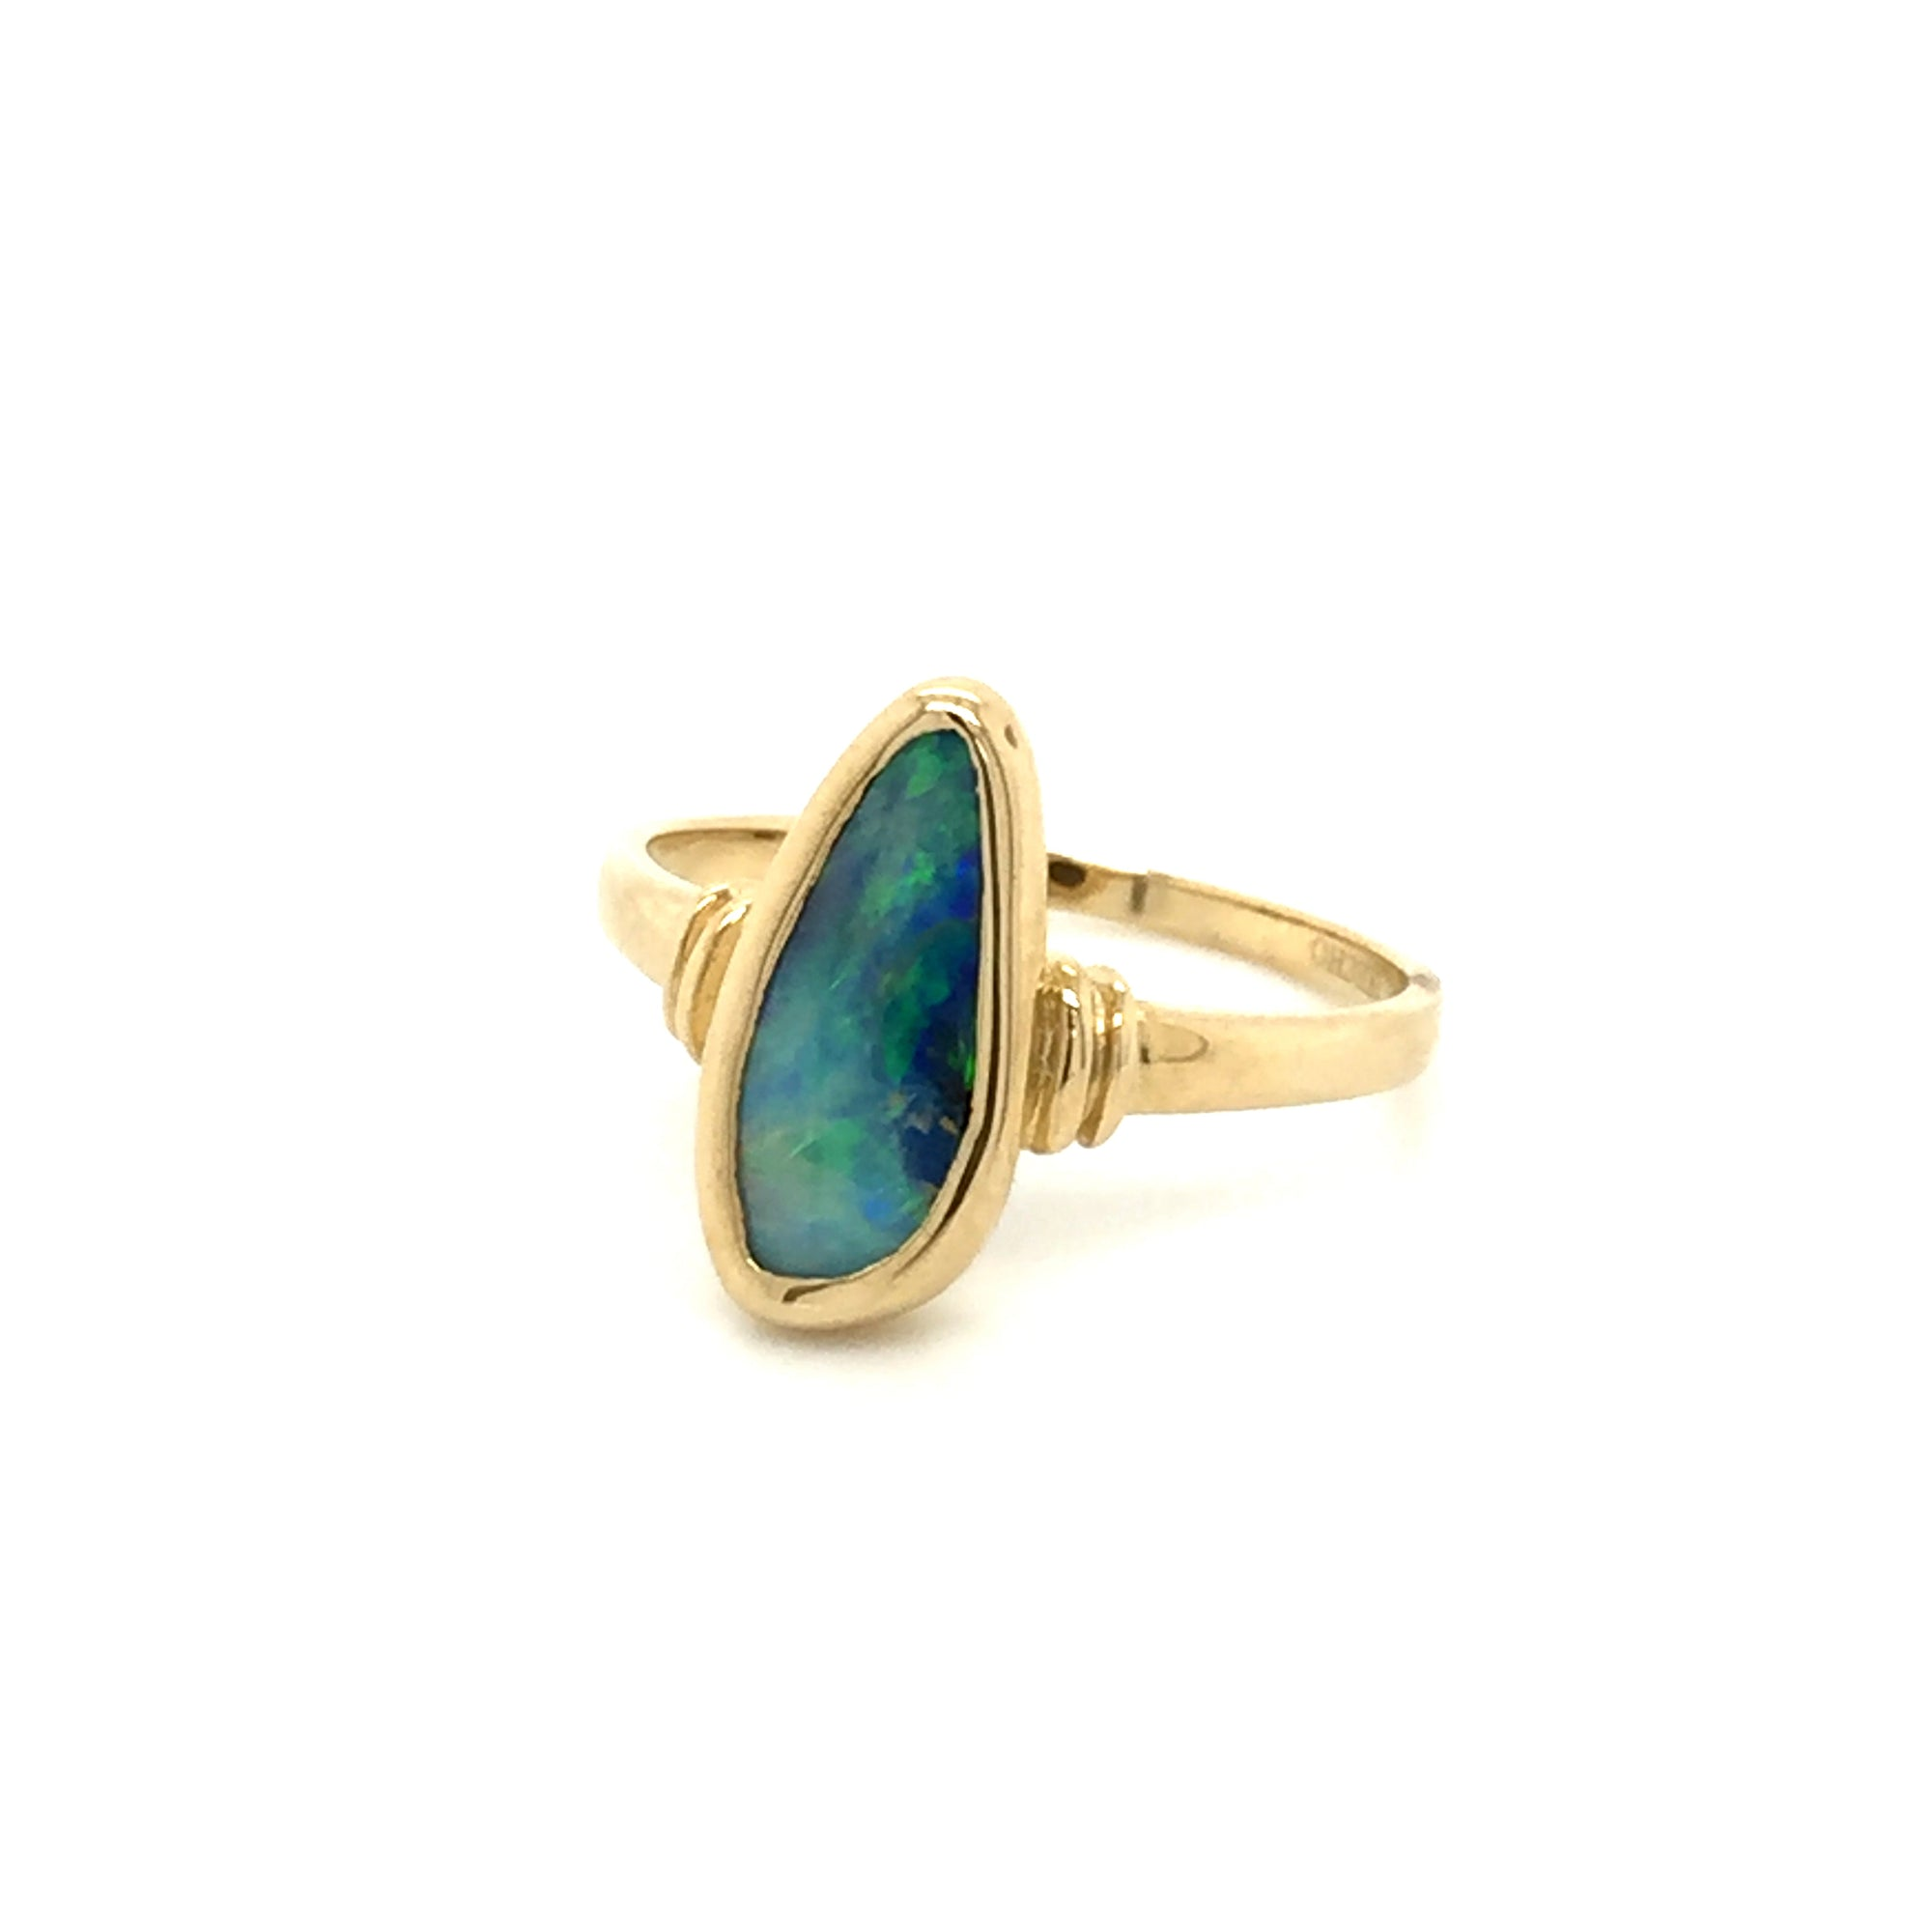 9ct gold boulder opal ring - Red Carpet Jewellers